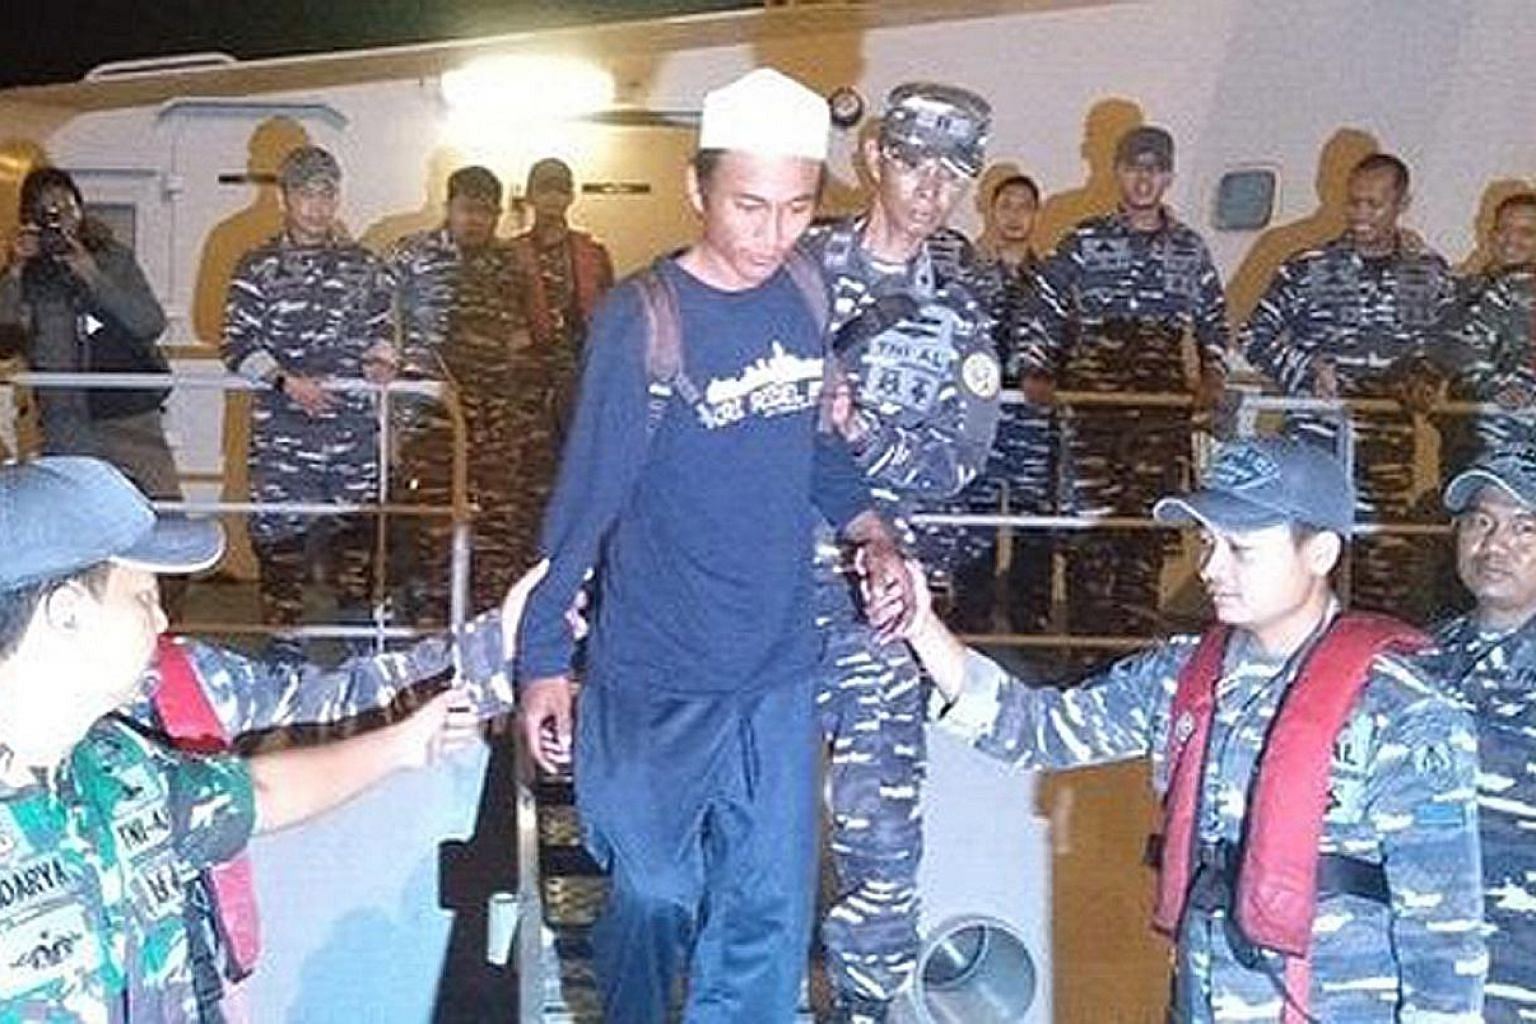 Fisherman Ari Agus Arman Harianto, whose boat was crushed in the Sunda Strait tsunami, was rescued from an island near Anak Krakatau by Indonesian navy officers on Sunday.